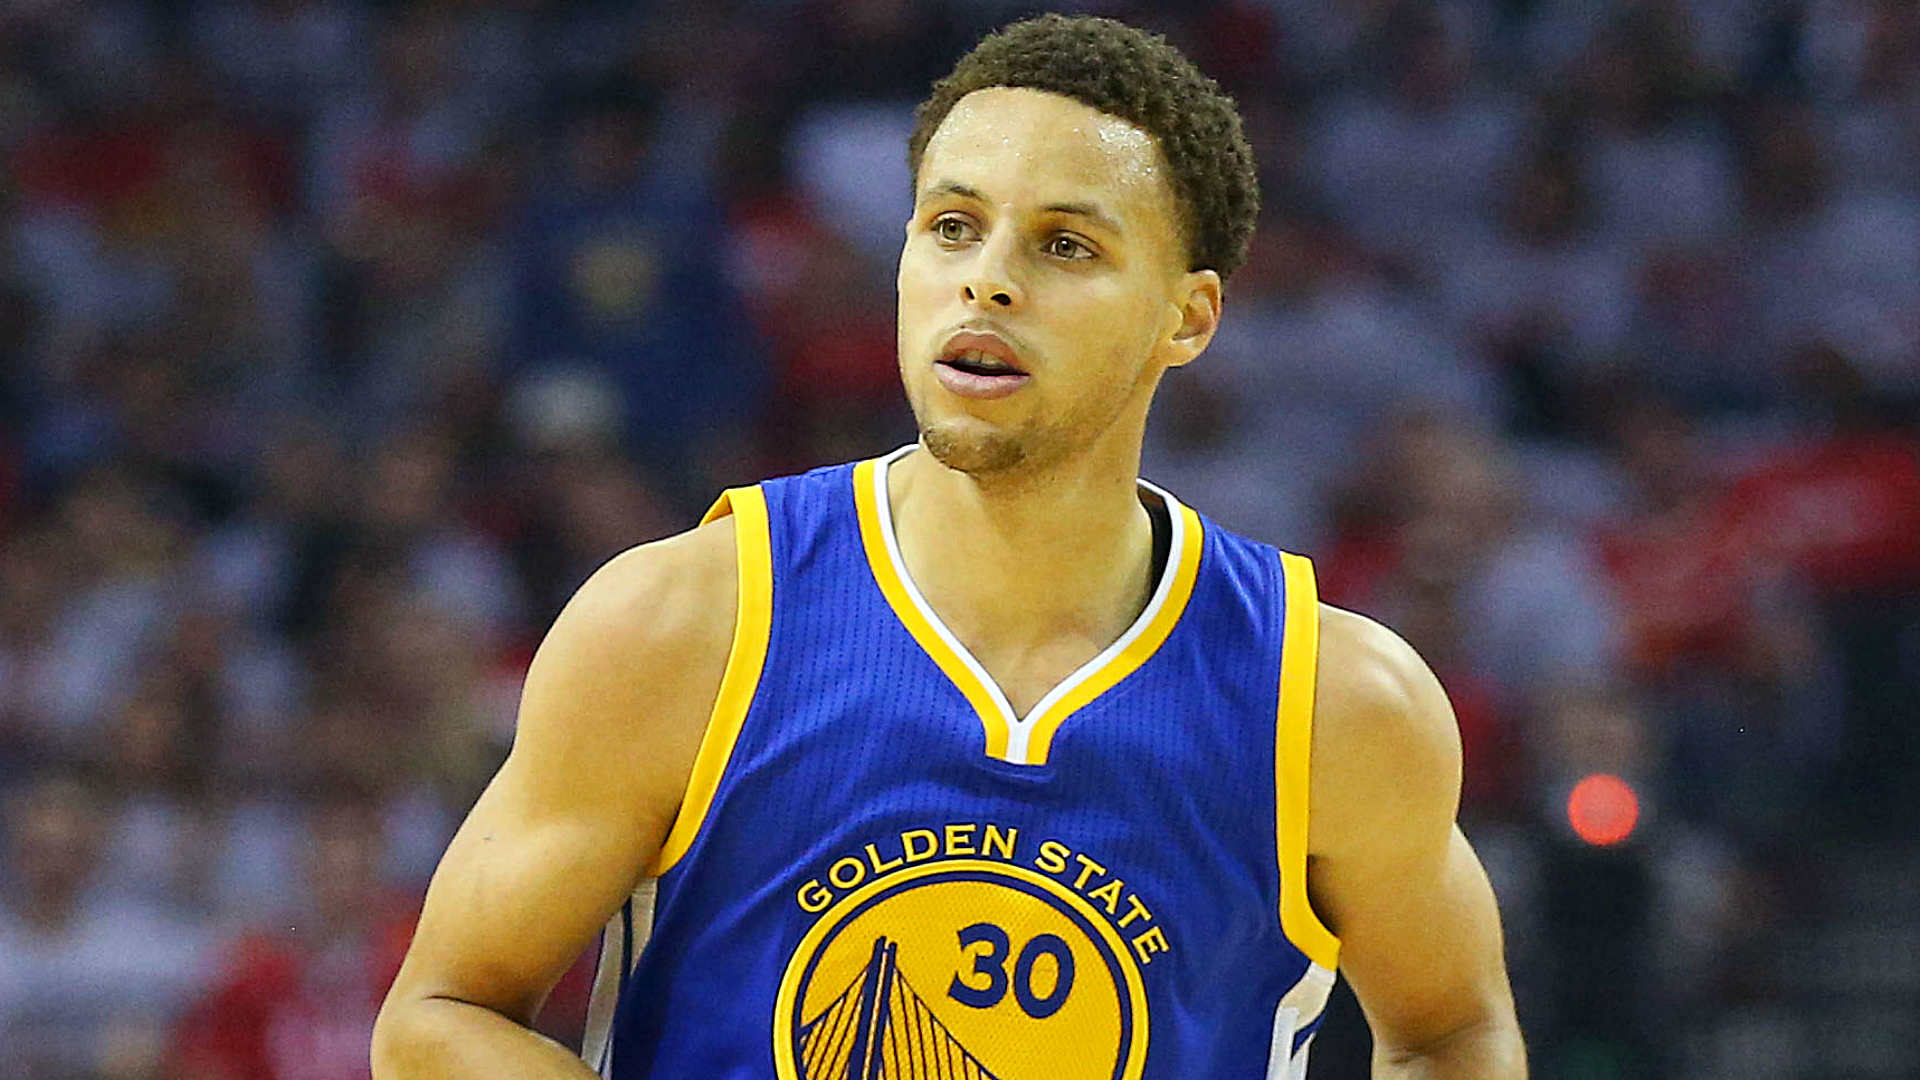 stephen curry instagramstephen curry instagram, stephen curry stats, stephen curry рост, stephen curry wallpaper, stephen curry кроссовки, stephen curry art, stephen curry 2017, stephen curry height, stephen curry wife, stephen curry обои, stephen curry 3 point, stephen curry shooting form, stephen curry 2016, stephen curry nba, stephen curry hd, stephen curry mix, stephen curry mvp, stephen curry фото, stephen curry 3, stephen curry song